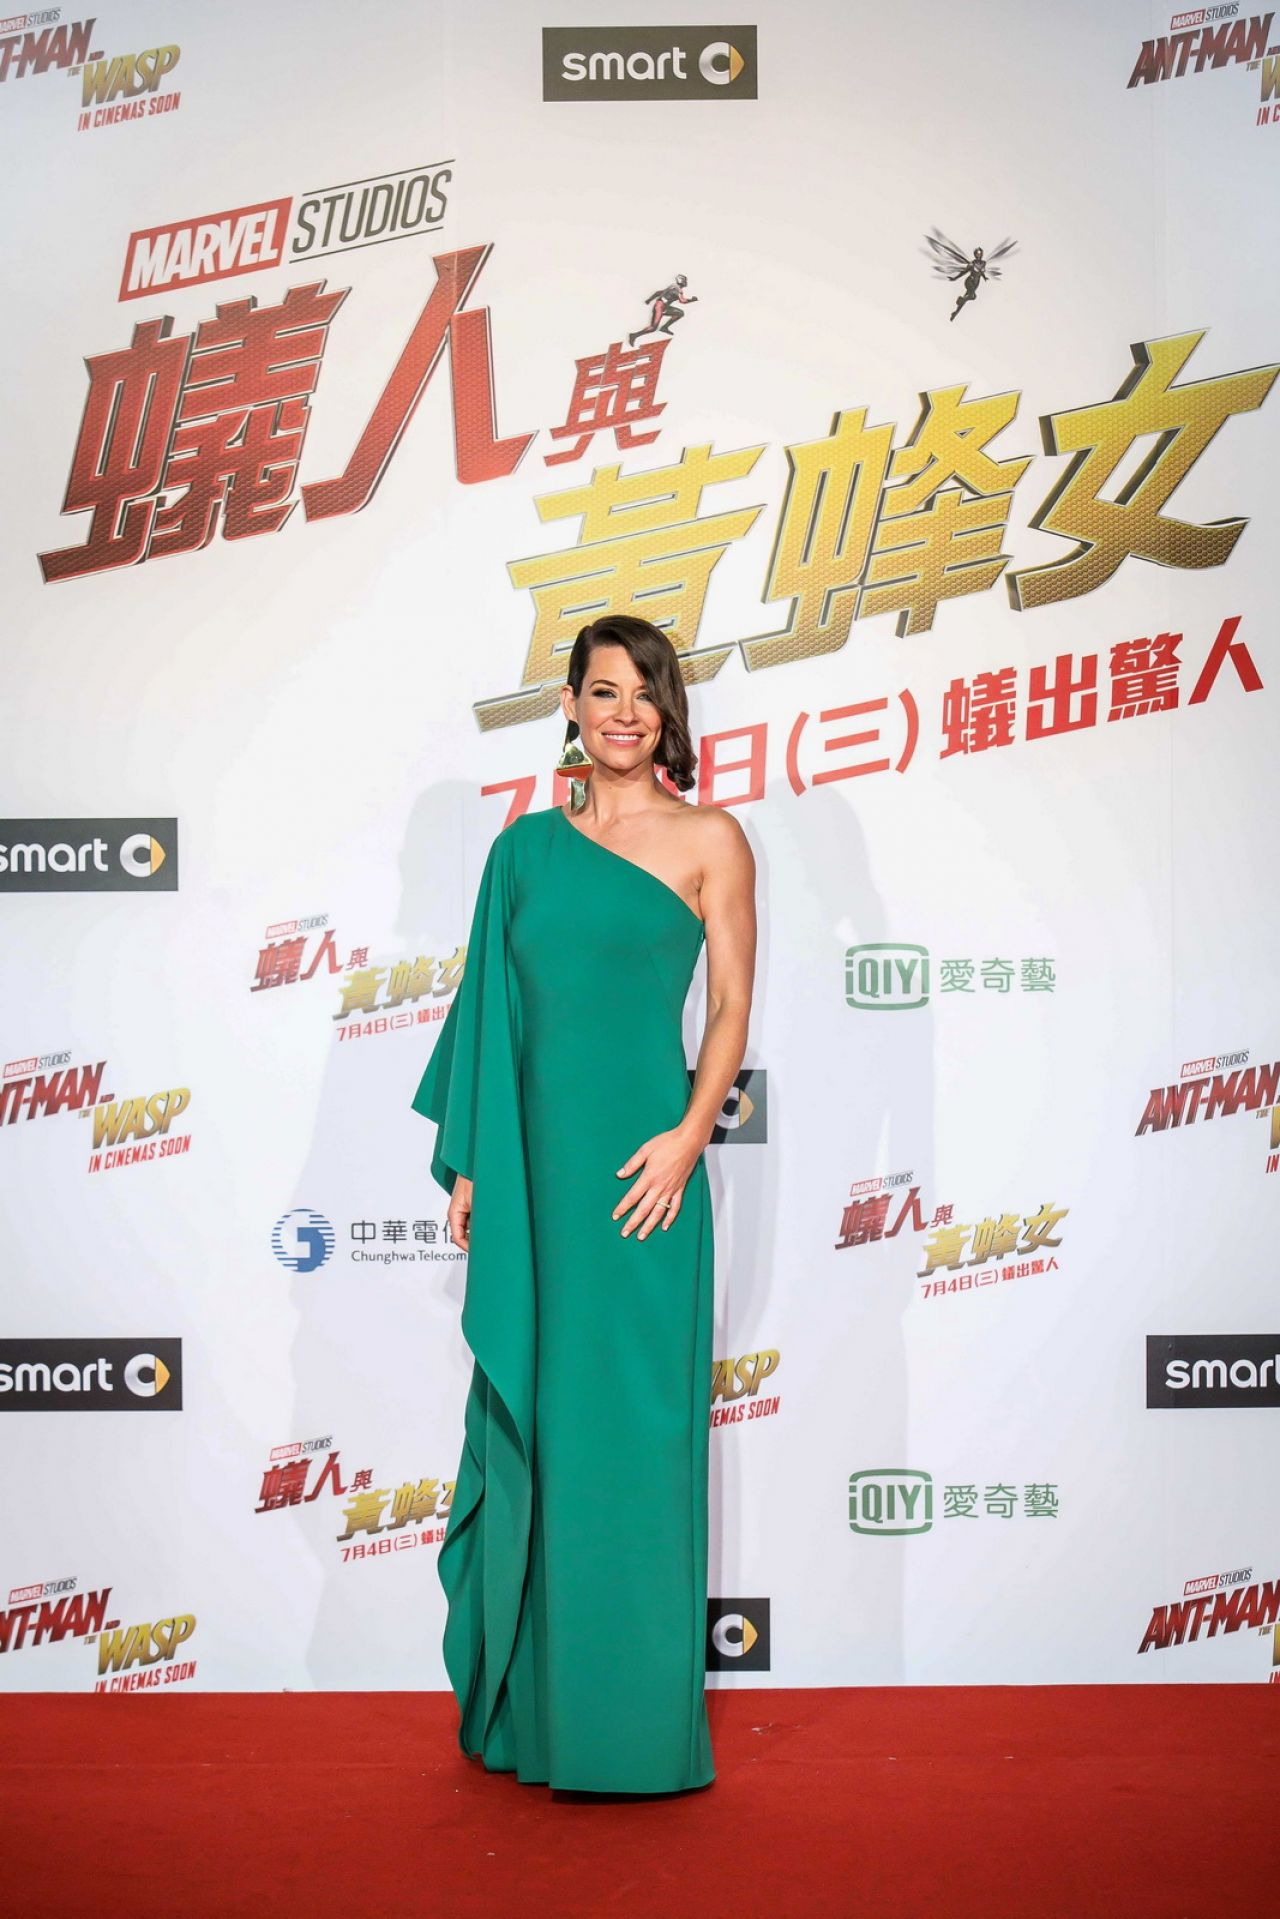 https://celebmafia.com/wp-content/uploads/2018/06/evangeline-lilly-ant-man-and-the-wasp-premiere-in-taipei-7.jpg